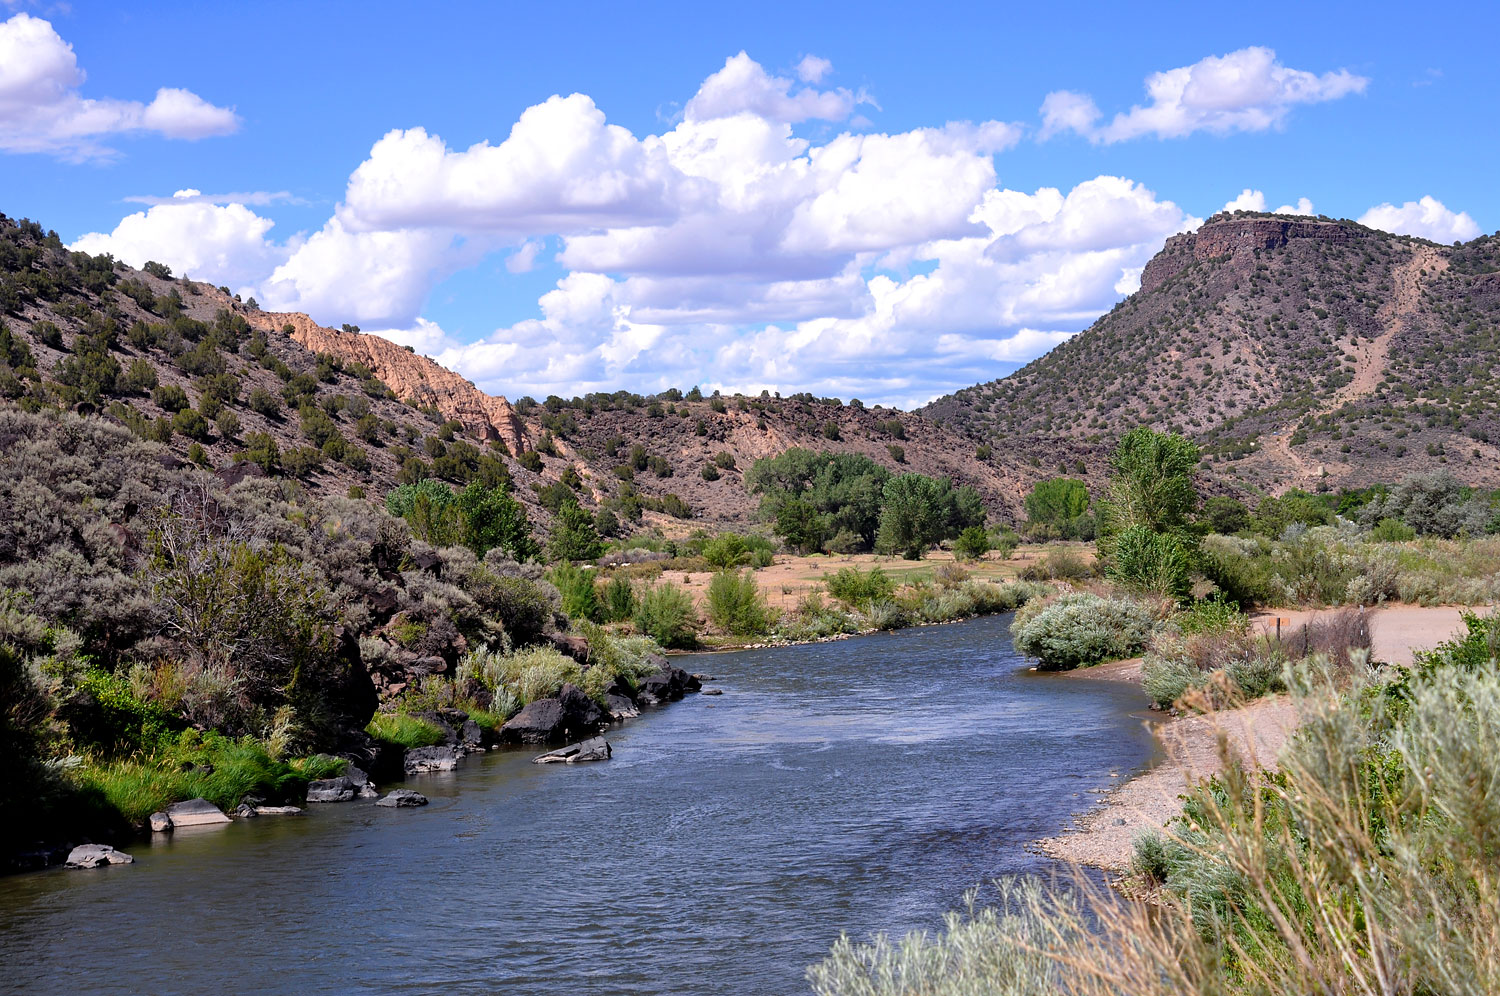 The Río Grande del Norte National Monument (New Mexico): Located northwest of Taos, the Río Grande del Norte contains stretches of the Río Grande Gorge and is known for its spectacular landscapes, recreational opportunities, and for serving as an important habitat for many birds and wildlife.